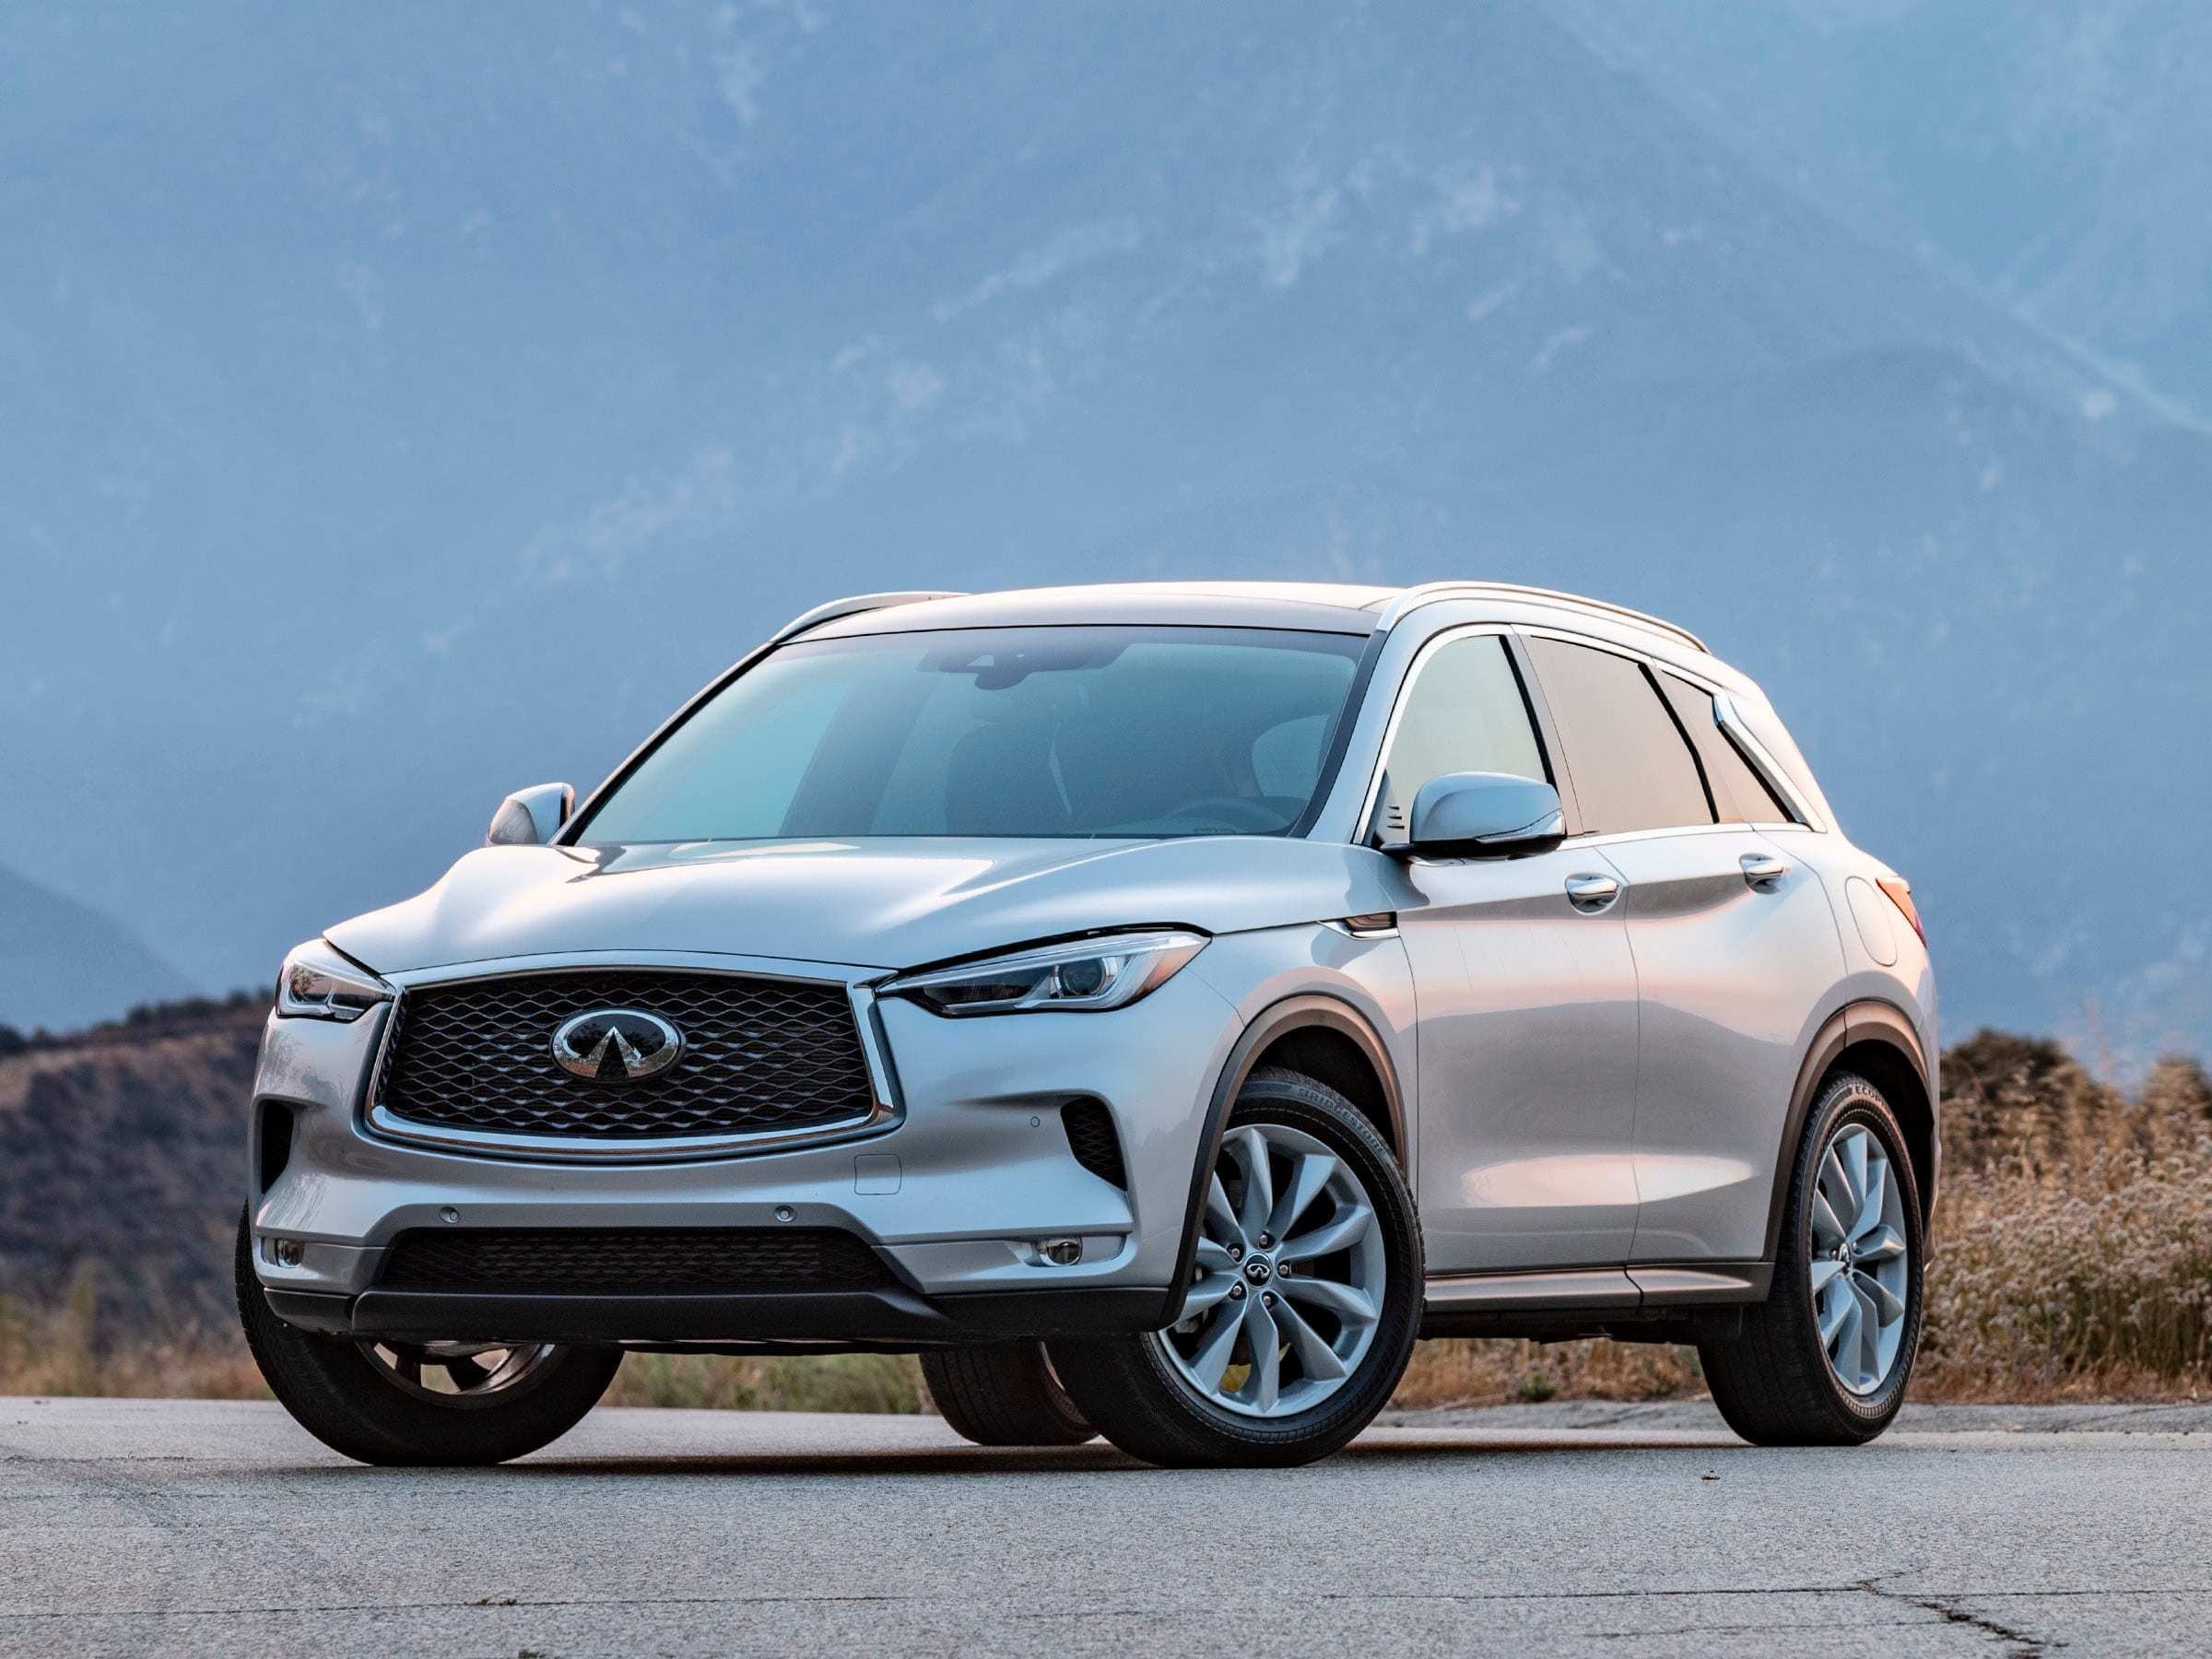 30 New The Infiniti News 2019 Review Speed Test for The Infiniti News 2019 Review